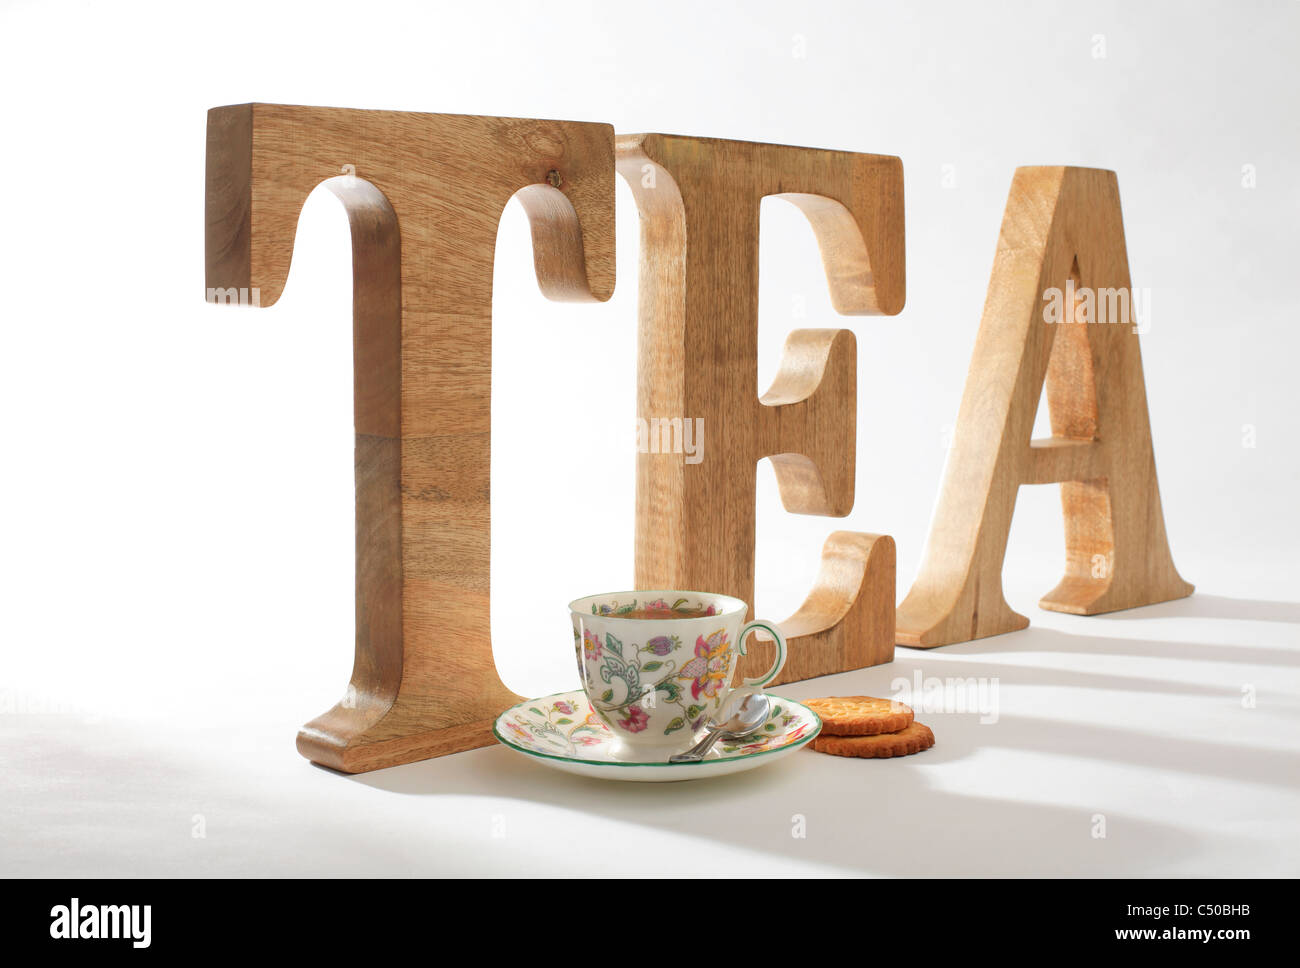 Cup of Tea Biscuits Lettering - Stock Image